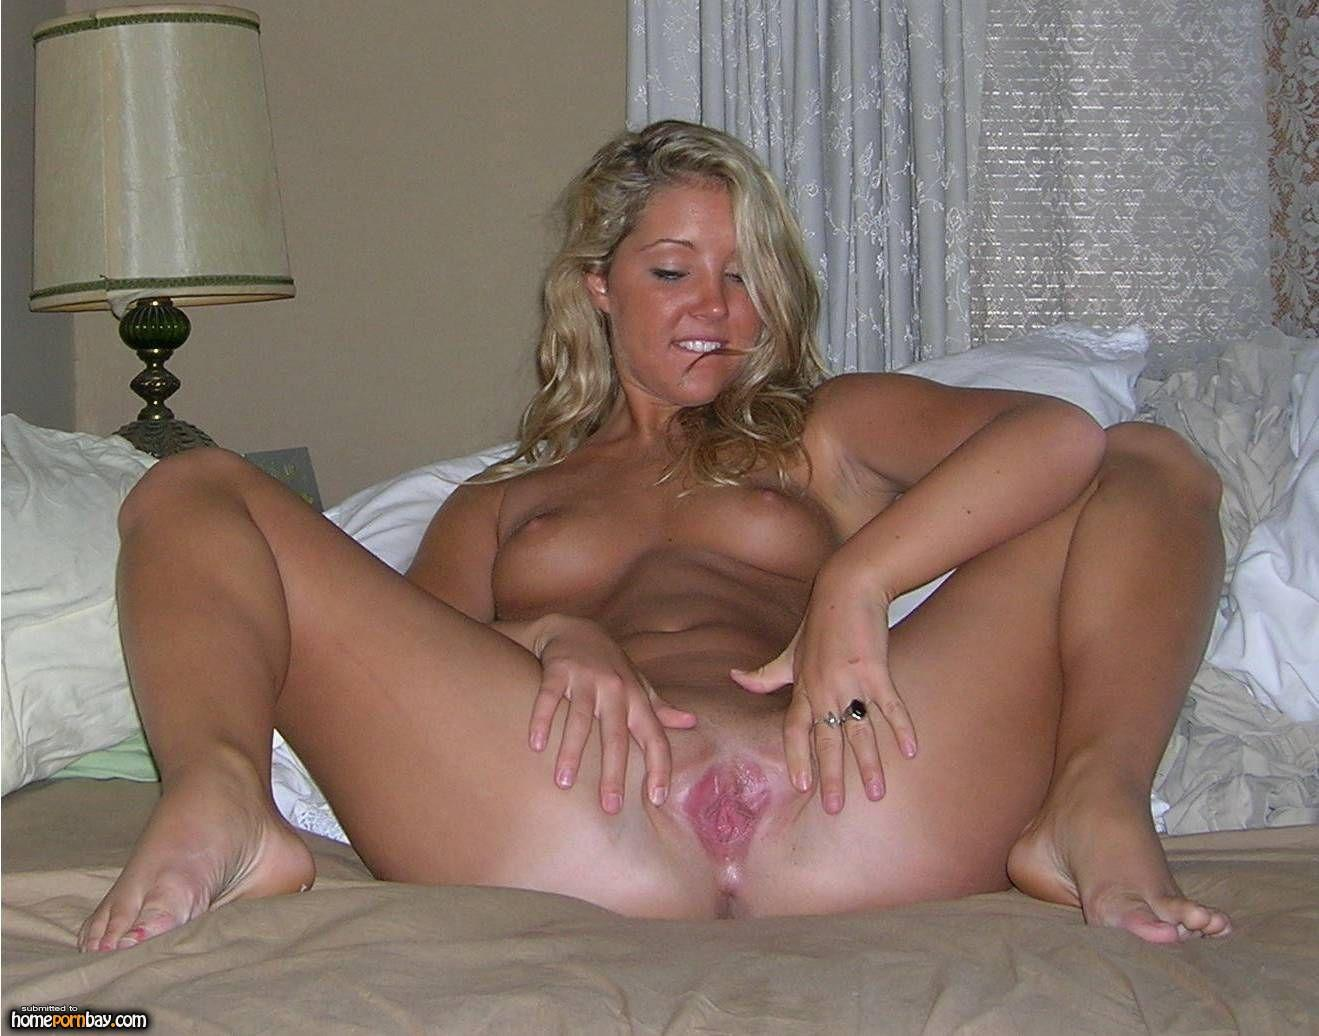 spread eagle nude females jpg 1200x900